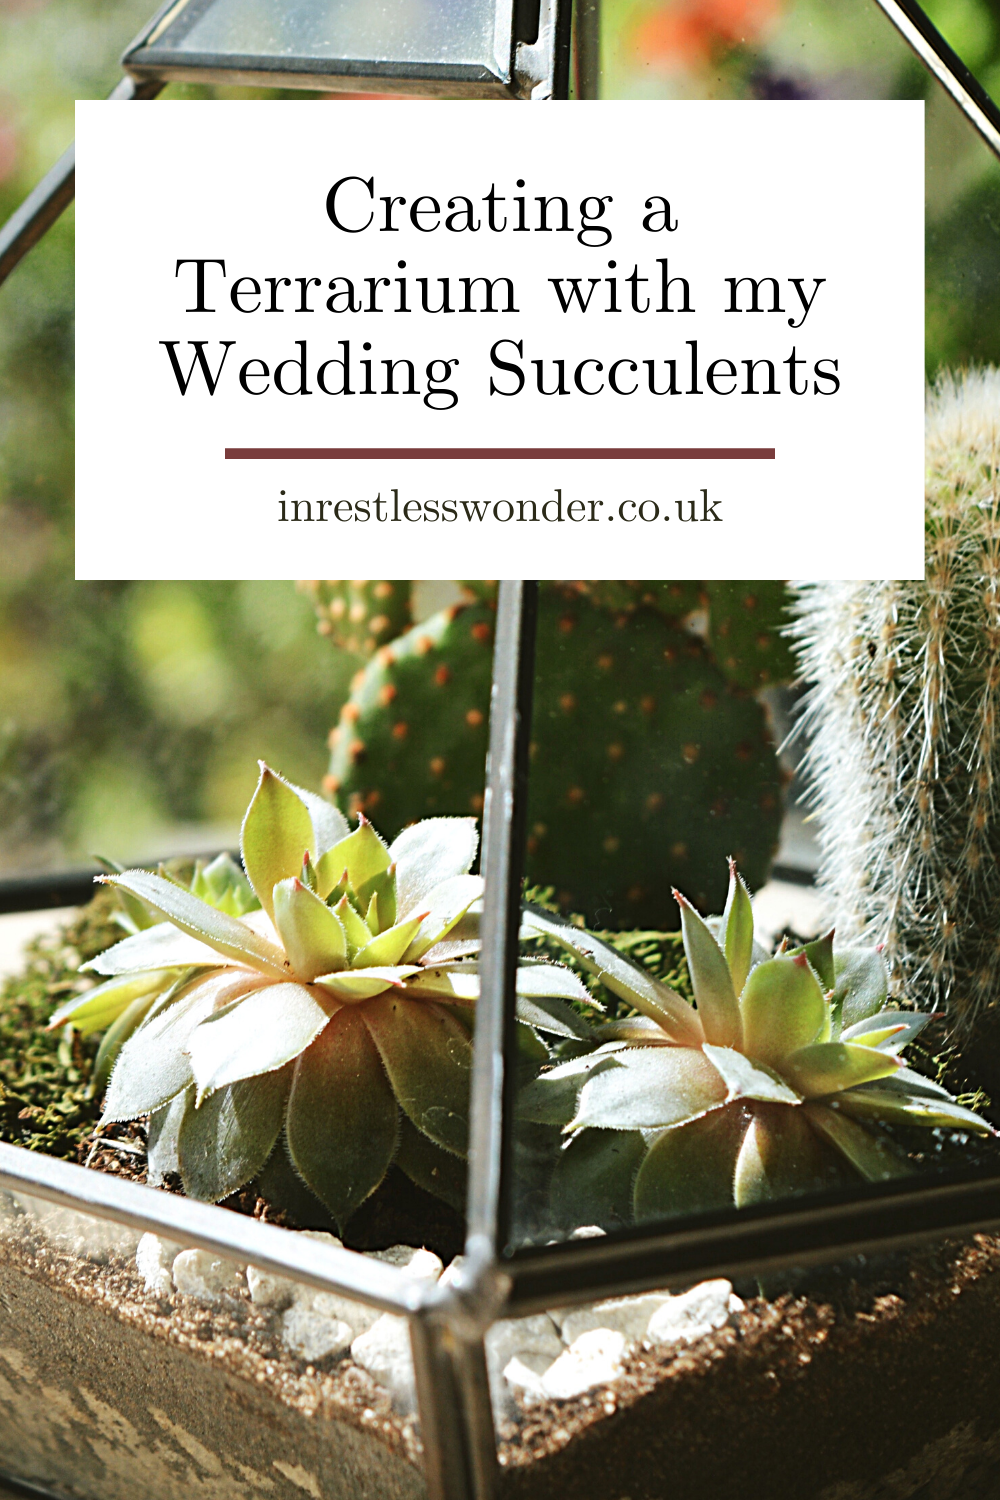 Creating a Terrarium with my Wedding Succulents